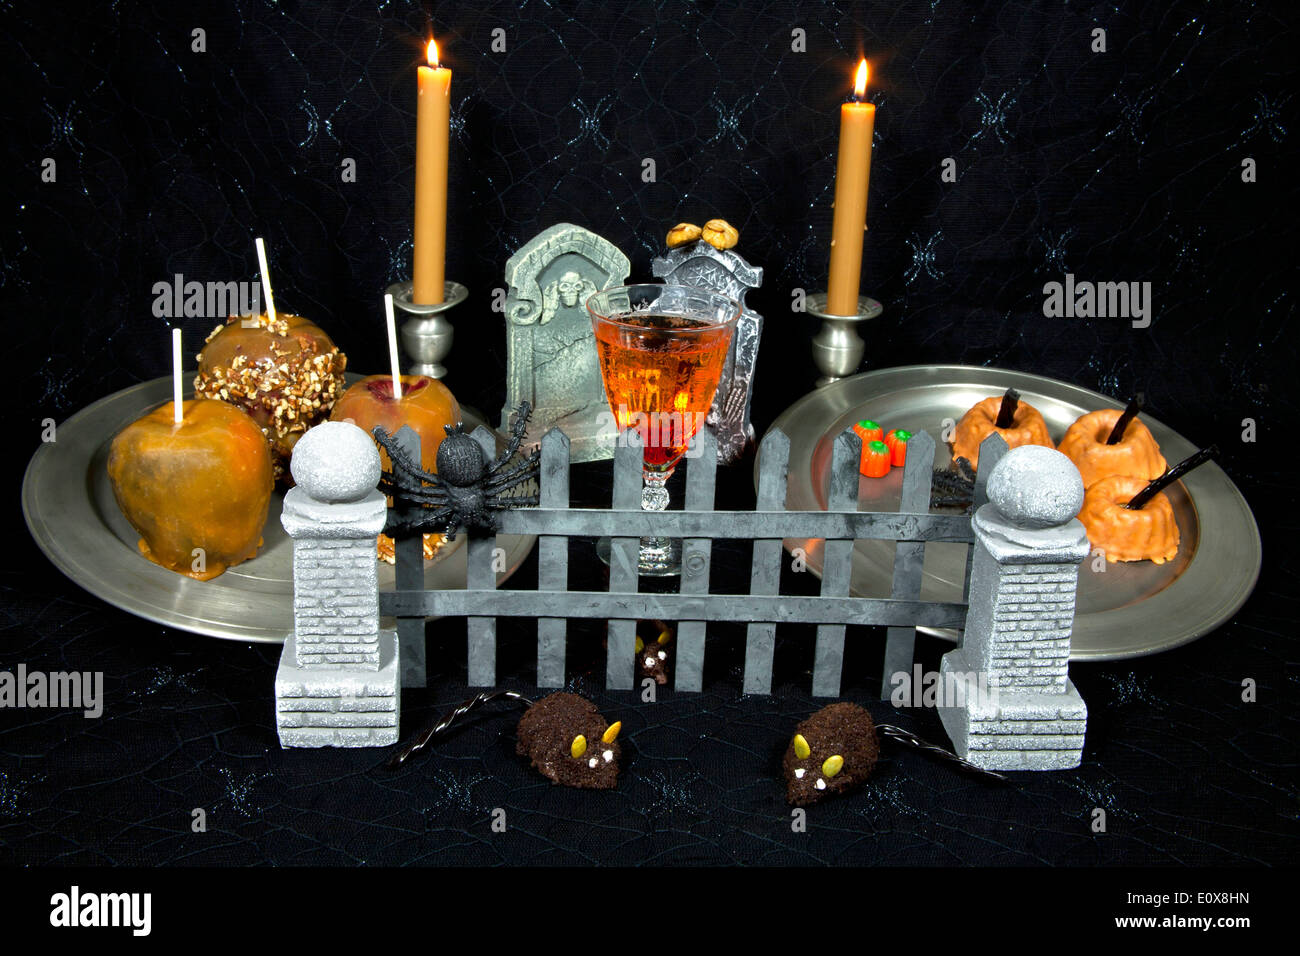 Halloween buffet table - Halloween Buffet Table Decorated As A Grave With Caramel Apples Pumpkin Cakes And Candies